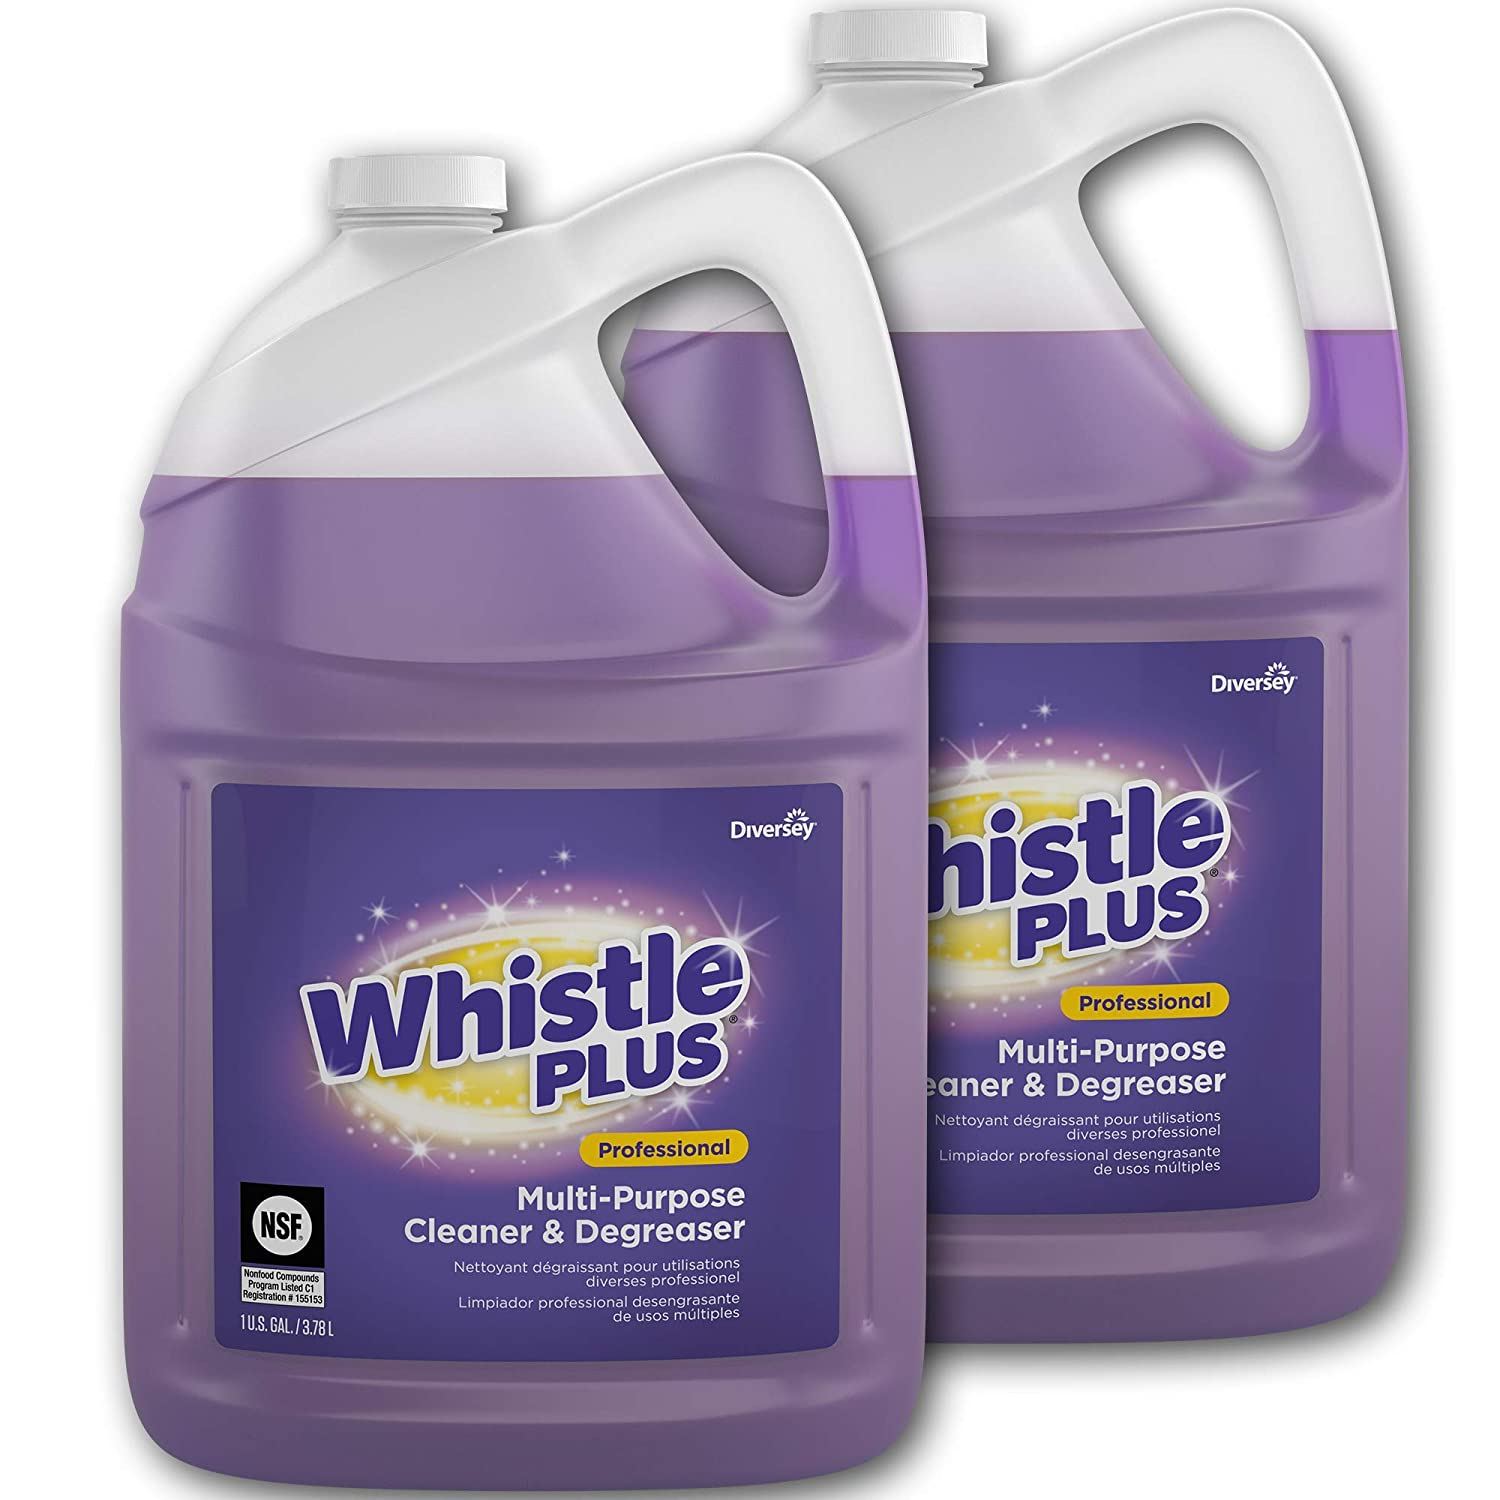 Diversey Whistle Plus Professional Multi Purpose Cleaner and Degreaser, 1 Gallon Bottle (2 Pack), (Model: CBD540588)